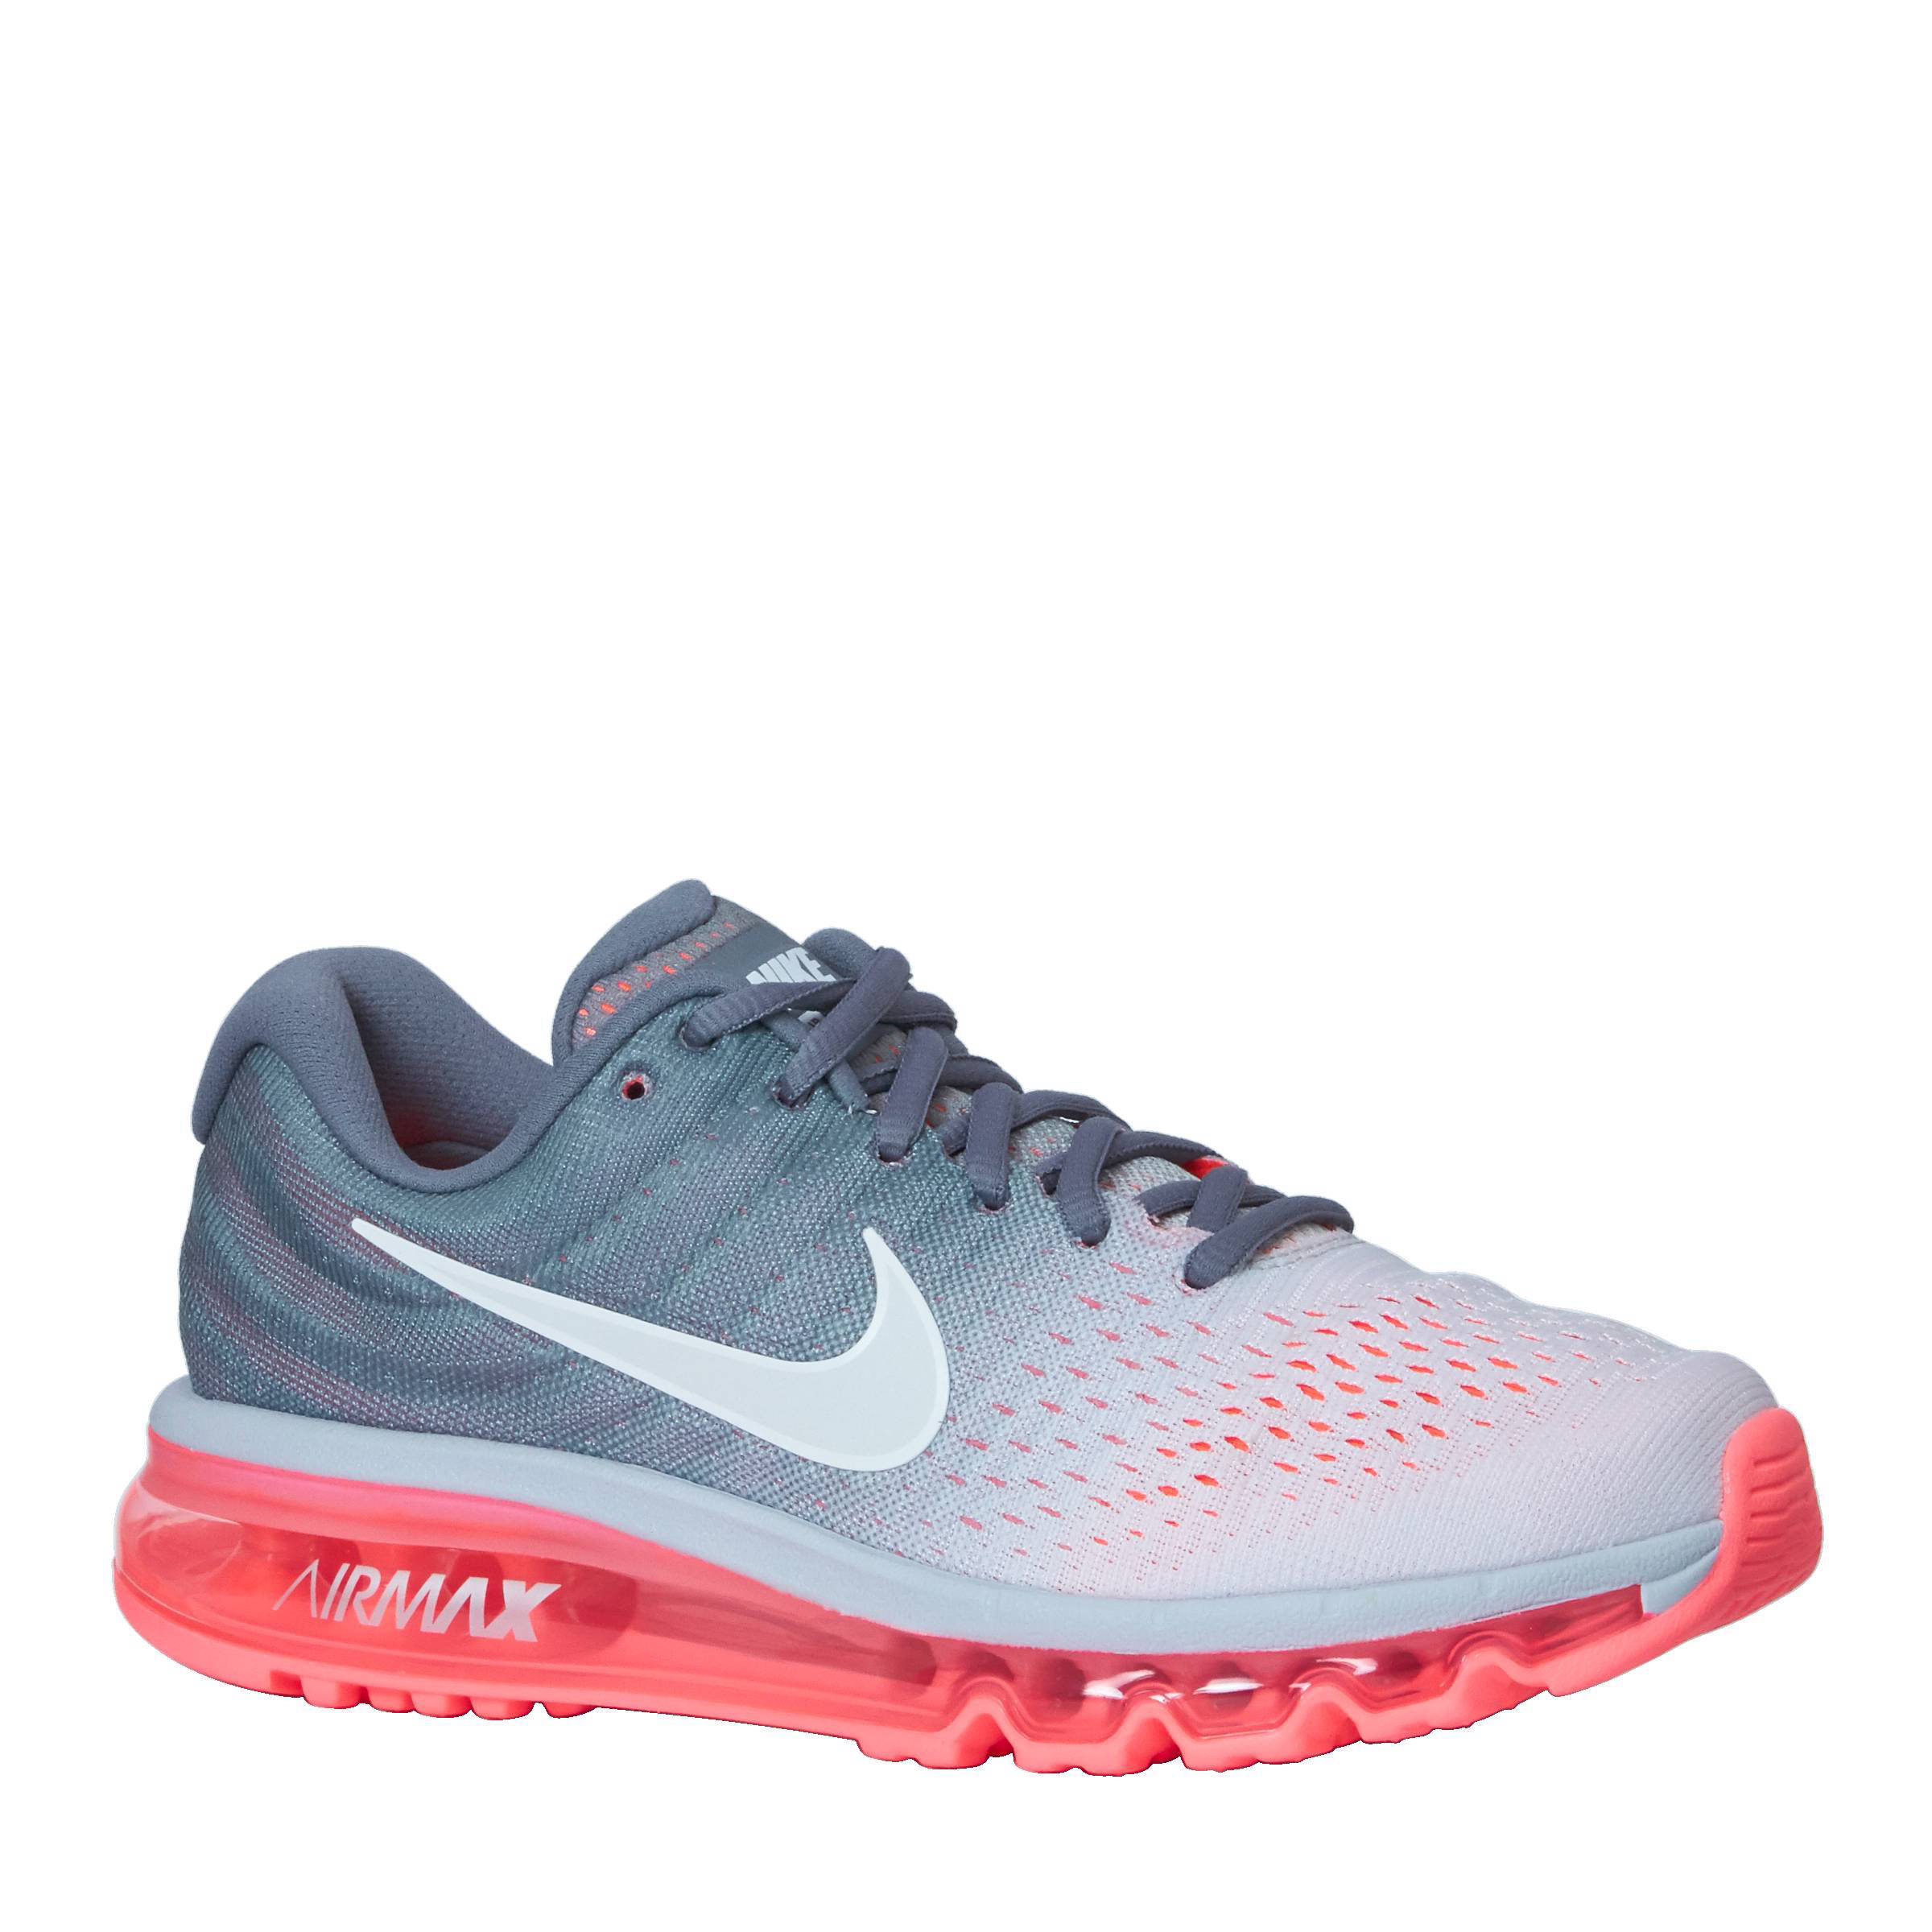 nike air max 2017 dames grijs